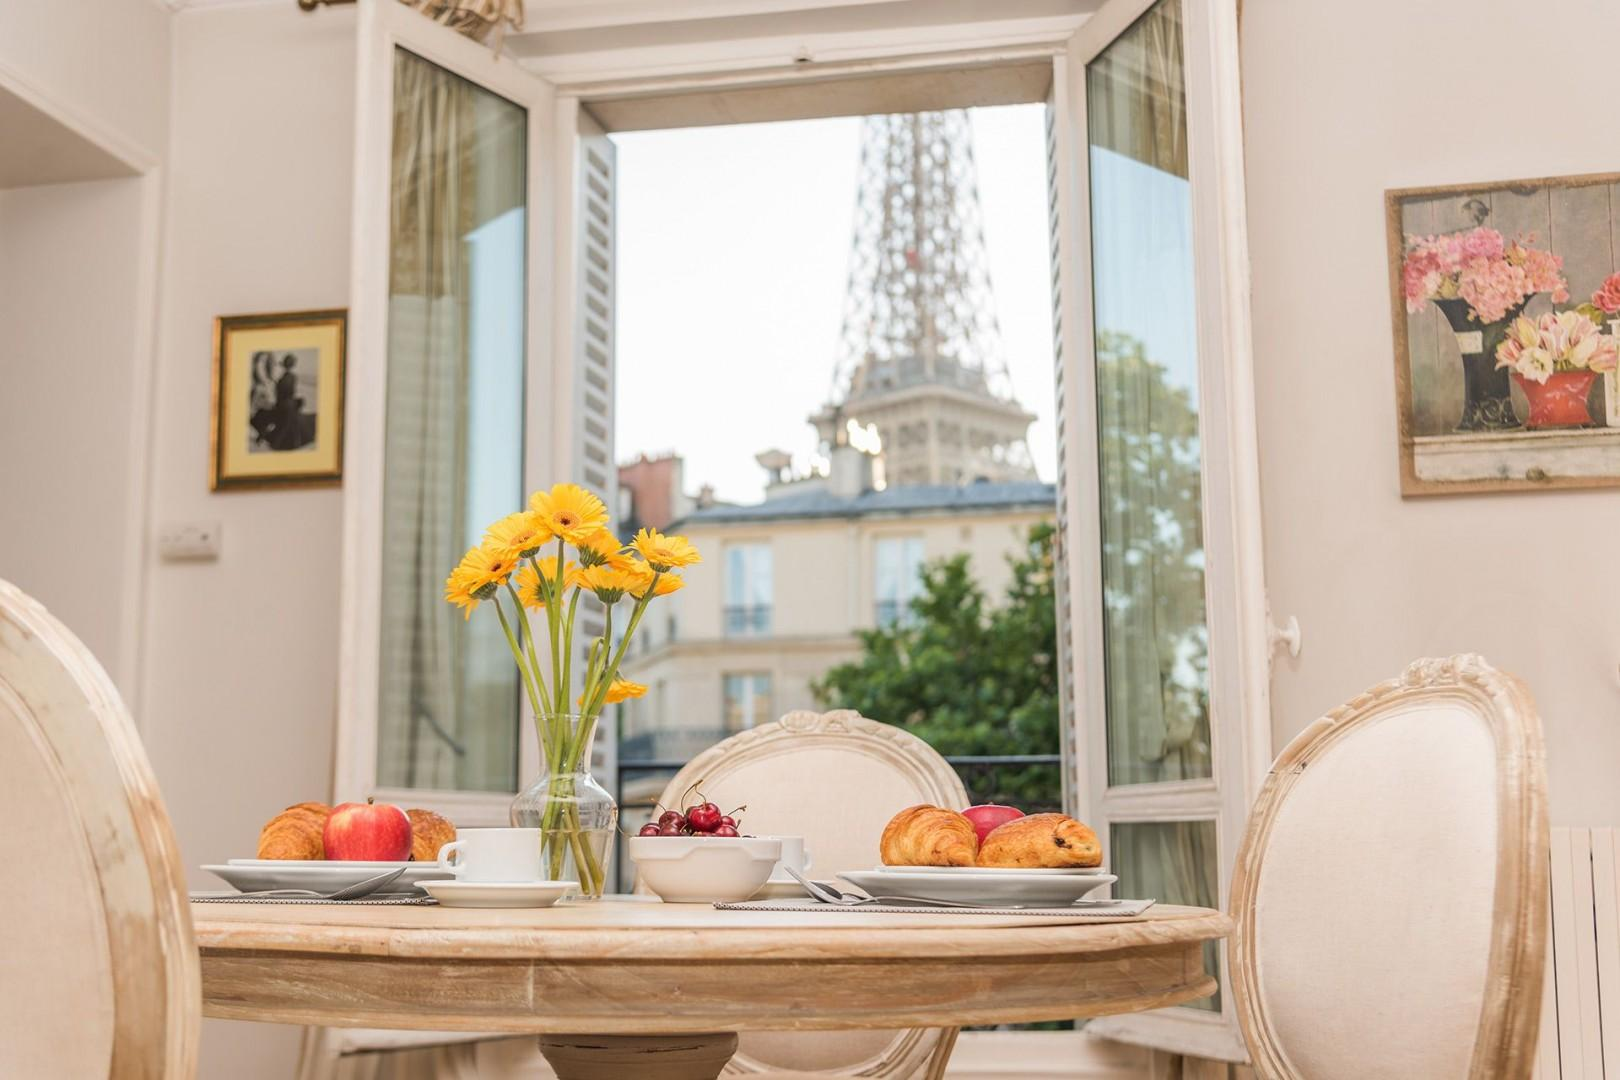 Enjoy a Parisian breakfast with a view in your apartment.